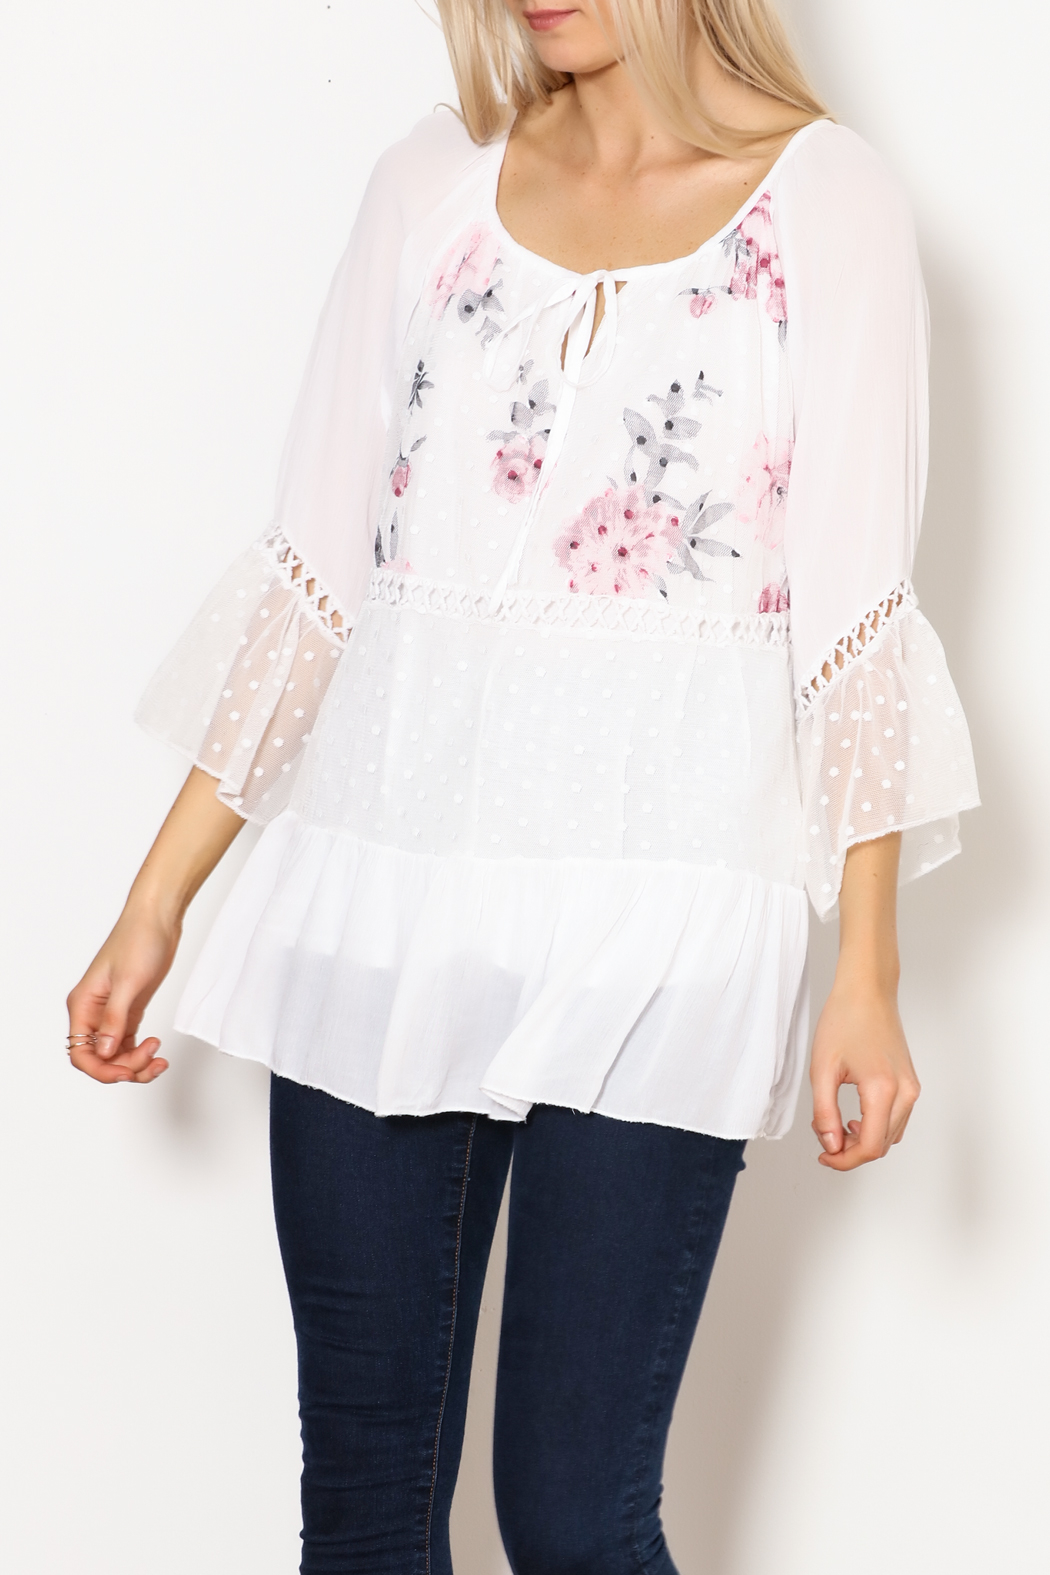 Bella Amore White Dot With Floral Italian Top - Main Image